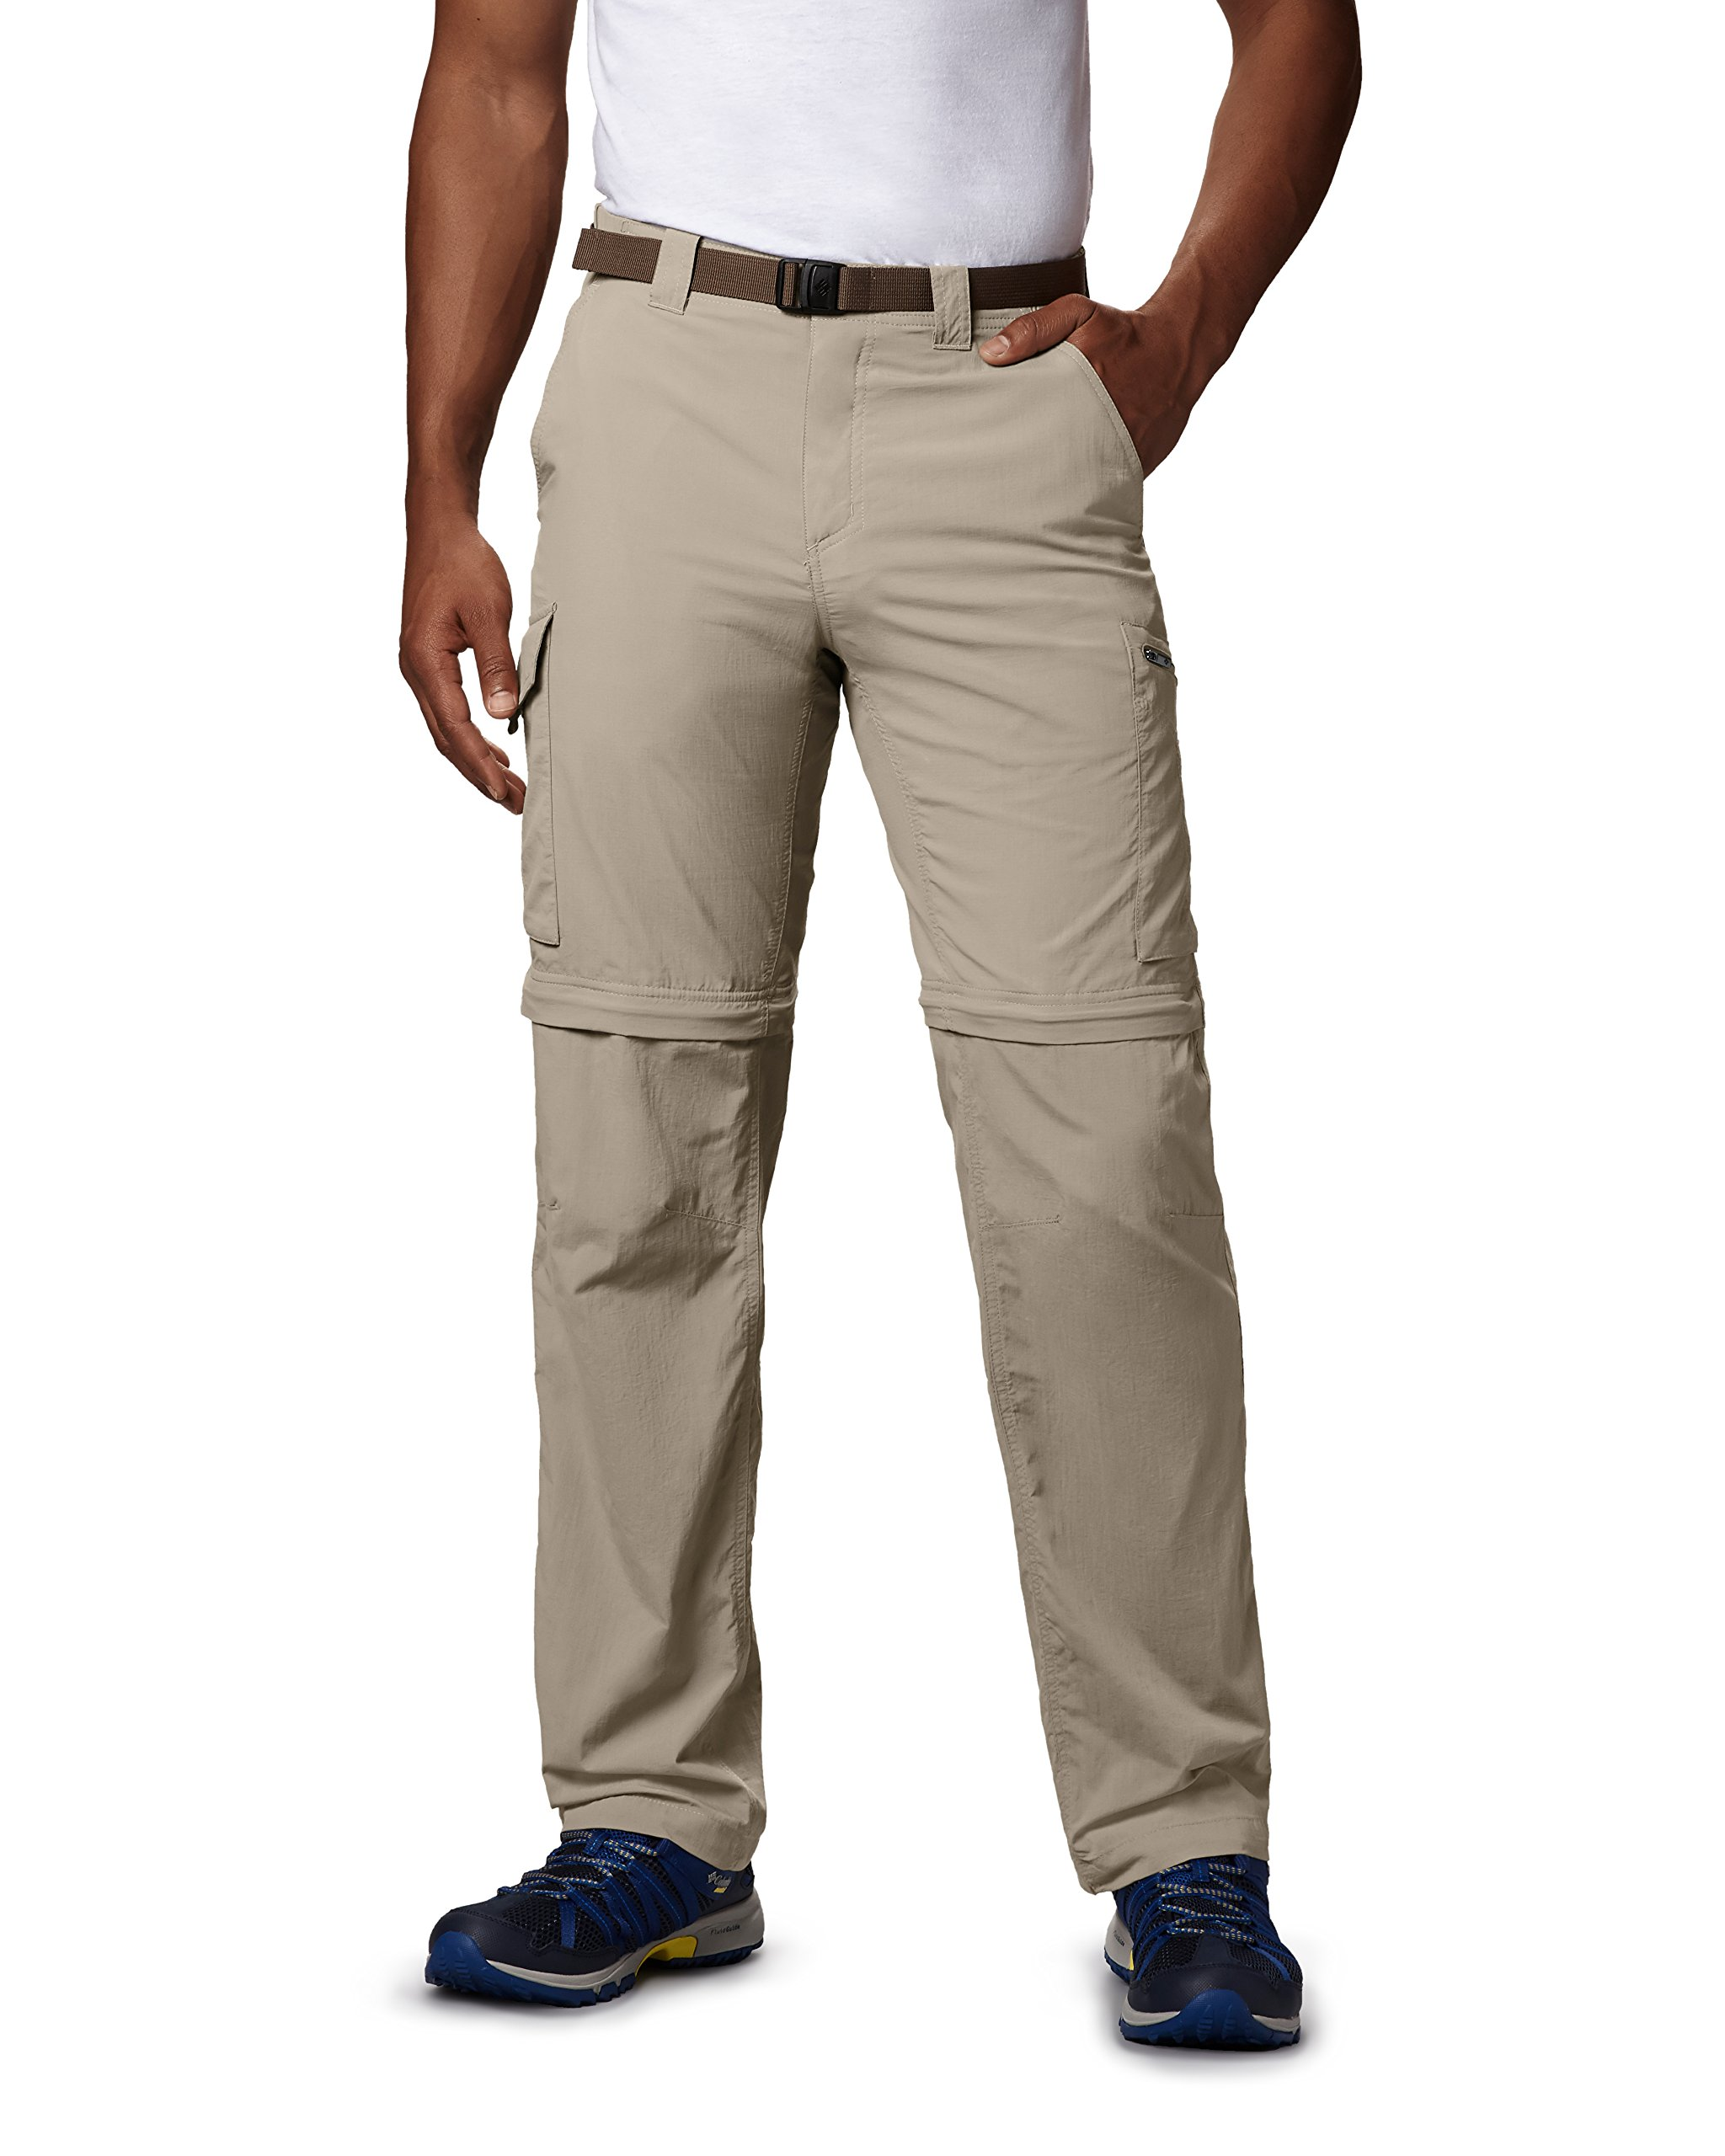 Columbia Men's Silver Ridge Convertible Pant, Breathable, UPF 50 Sun Protection, Fossil, 30x28